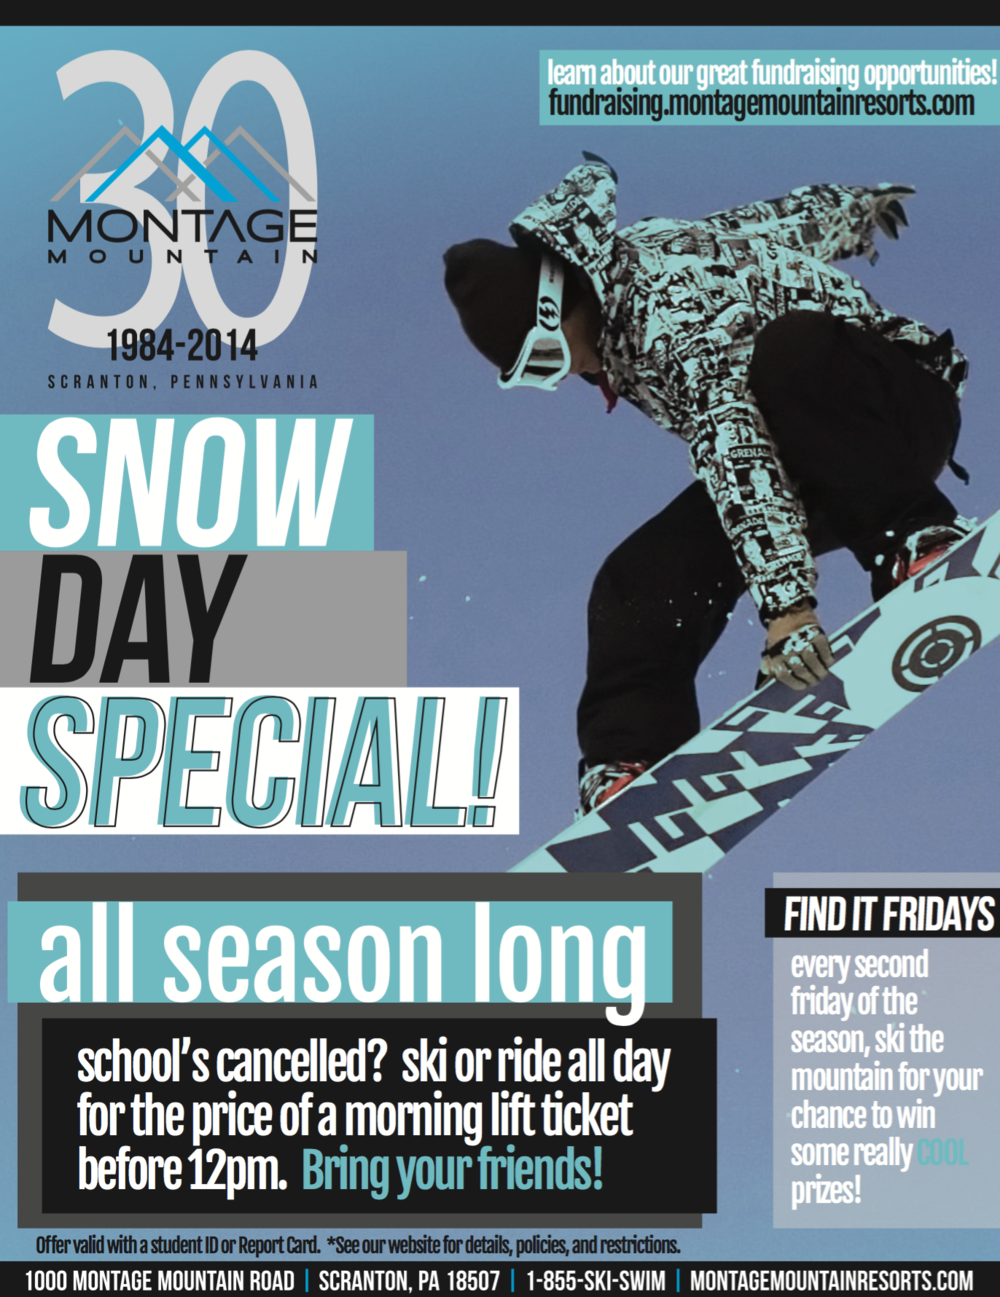 A poster I created to hang at the resort for season-long display. Informed guests about the special rate on snow days.